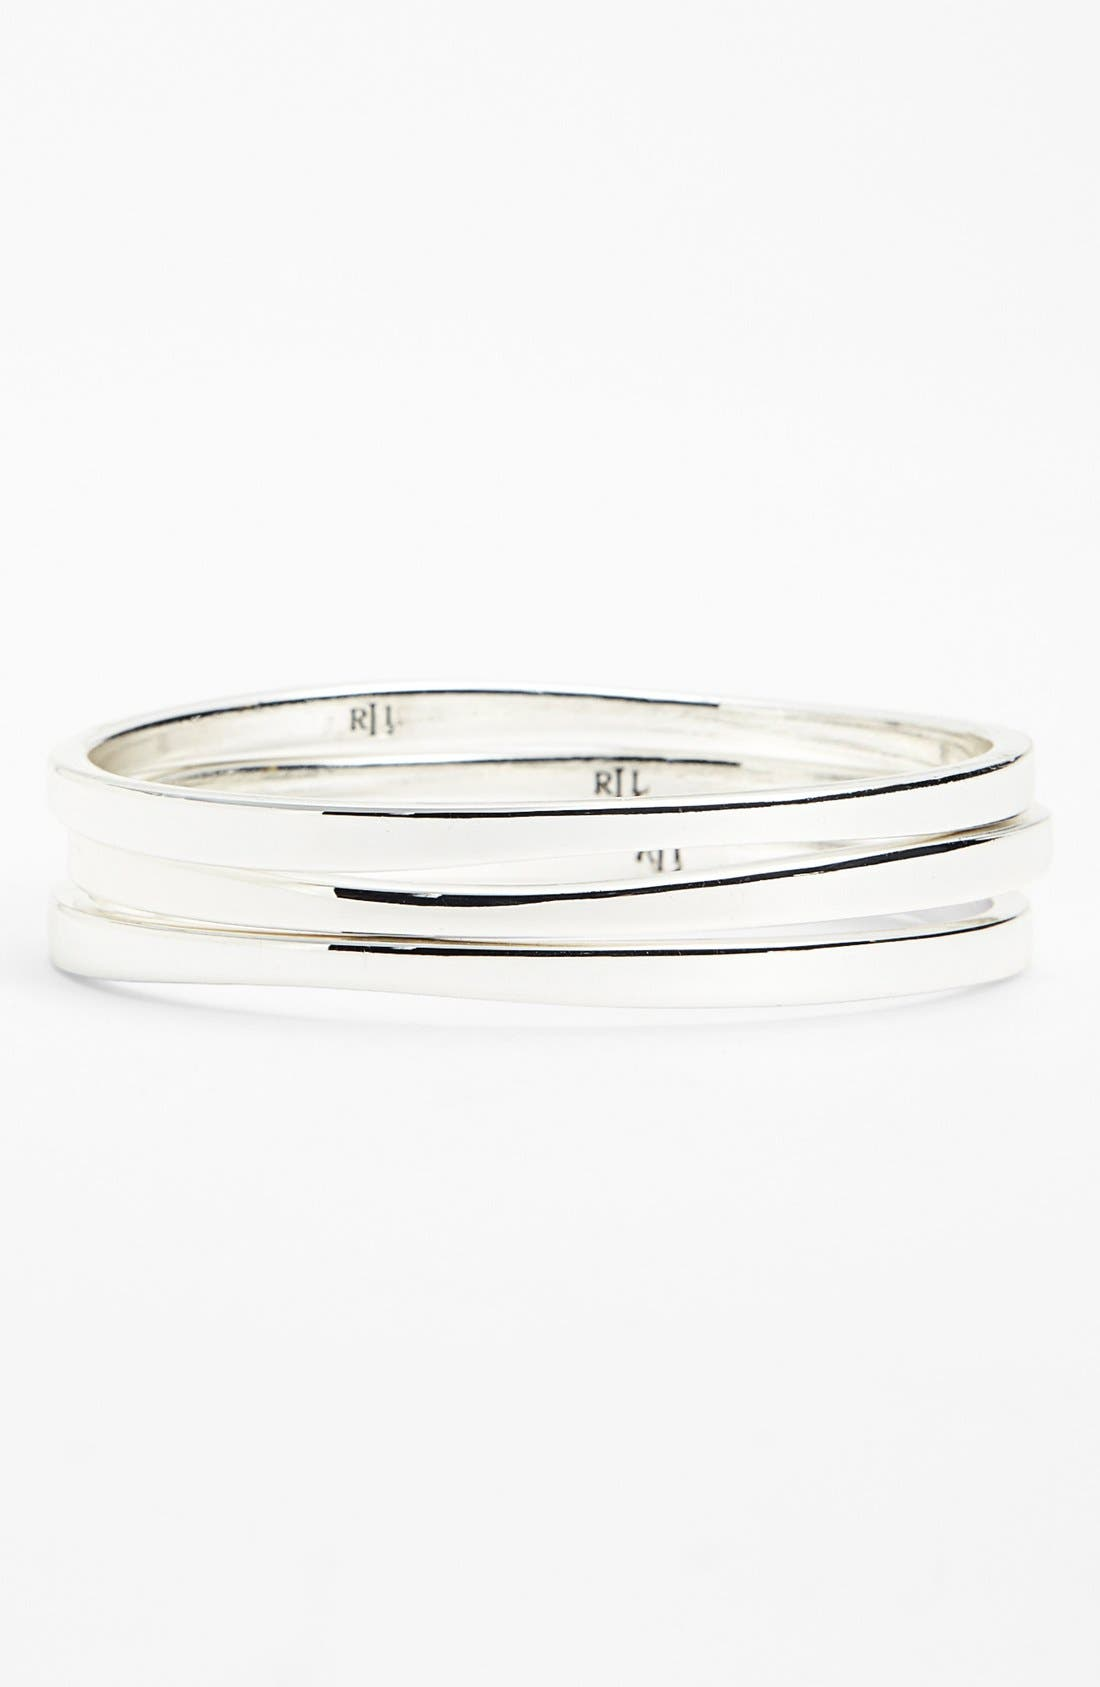 Alternate Image 1 Selected - Lauren Ralph Lauren Bangles (Set of 3)